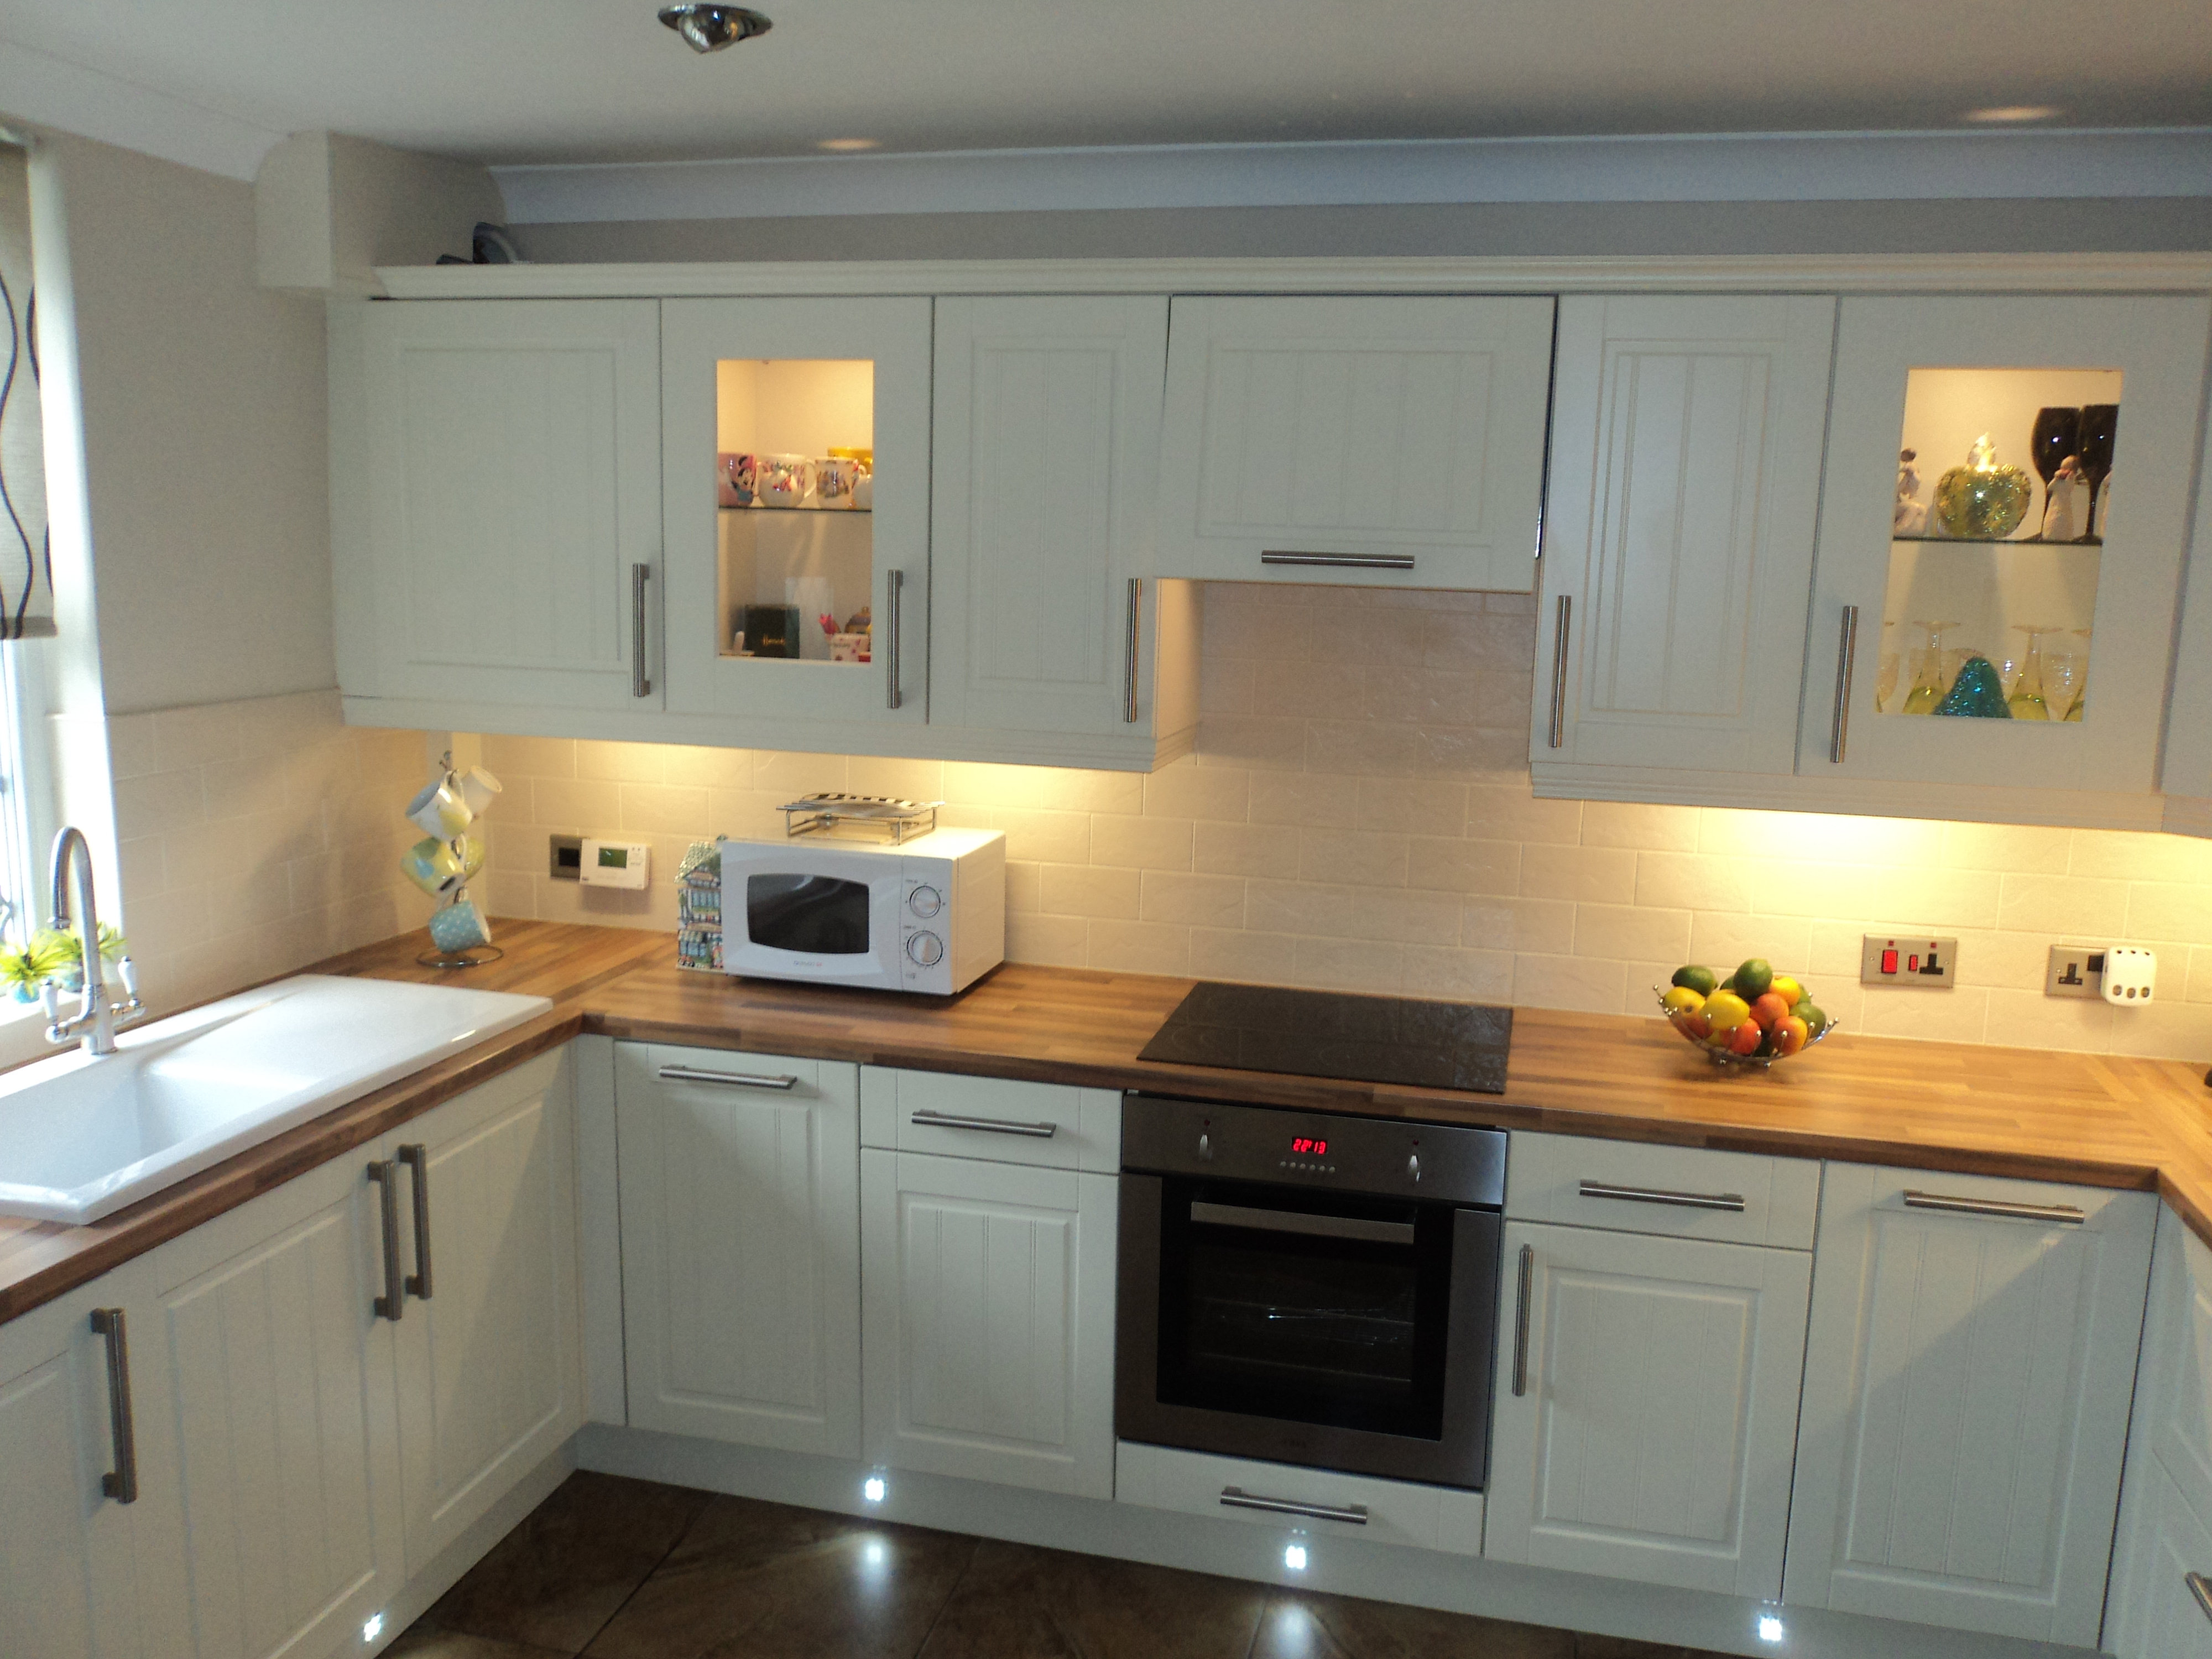 Infinity Kitchen Designs Infinity Kitchen Designs Ltd Suppliers Of Kitchens In Yorkshire